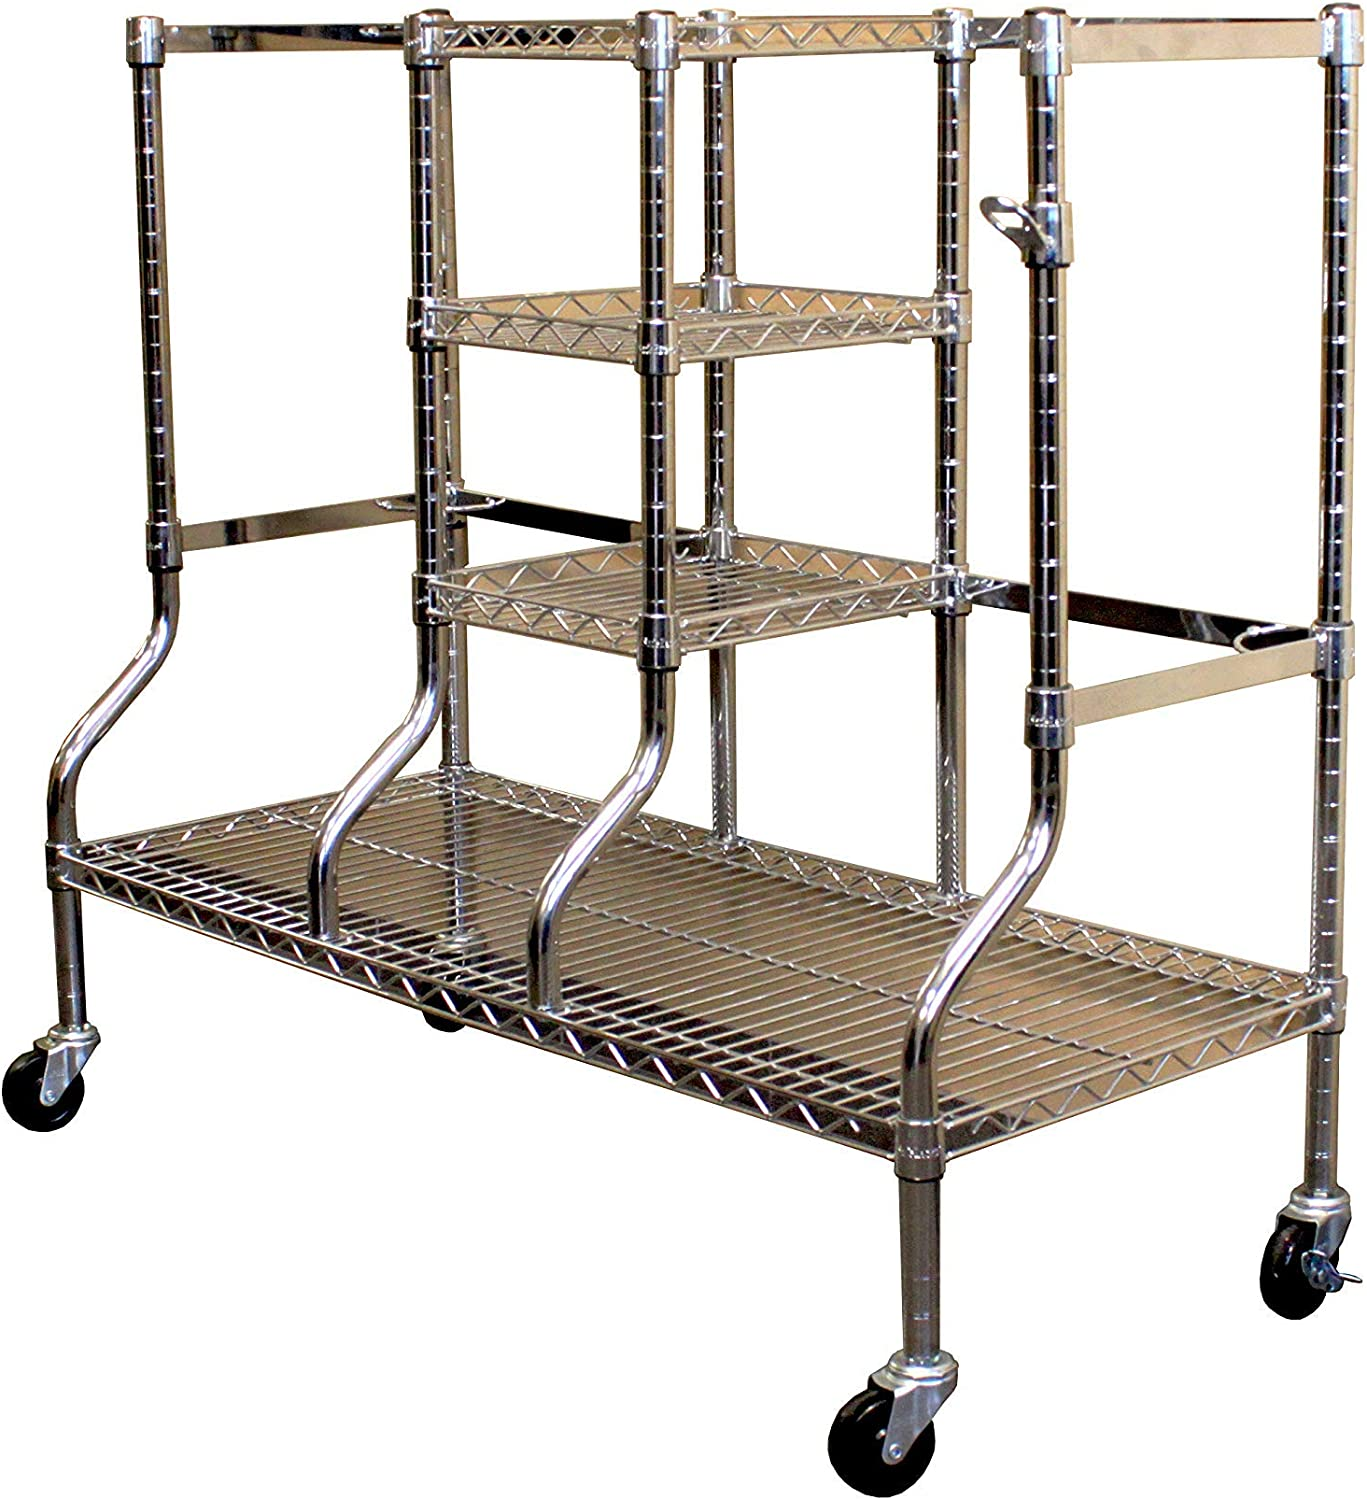 Saferacks Golf Equipment Organizer Rack Heavy Duty Steel Wire Shelf Extra Wide Fits 2 Extra Large Bags Plus Accessories Golf Rack Amazon Co Uk Sports Outdoors